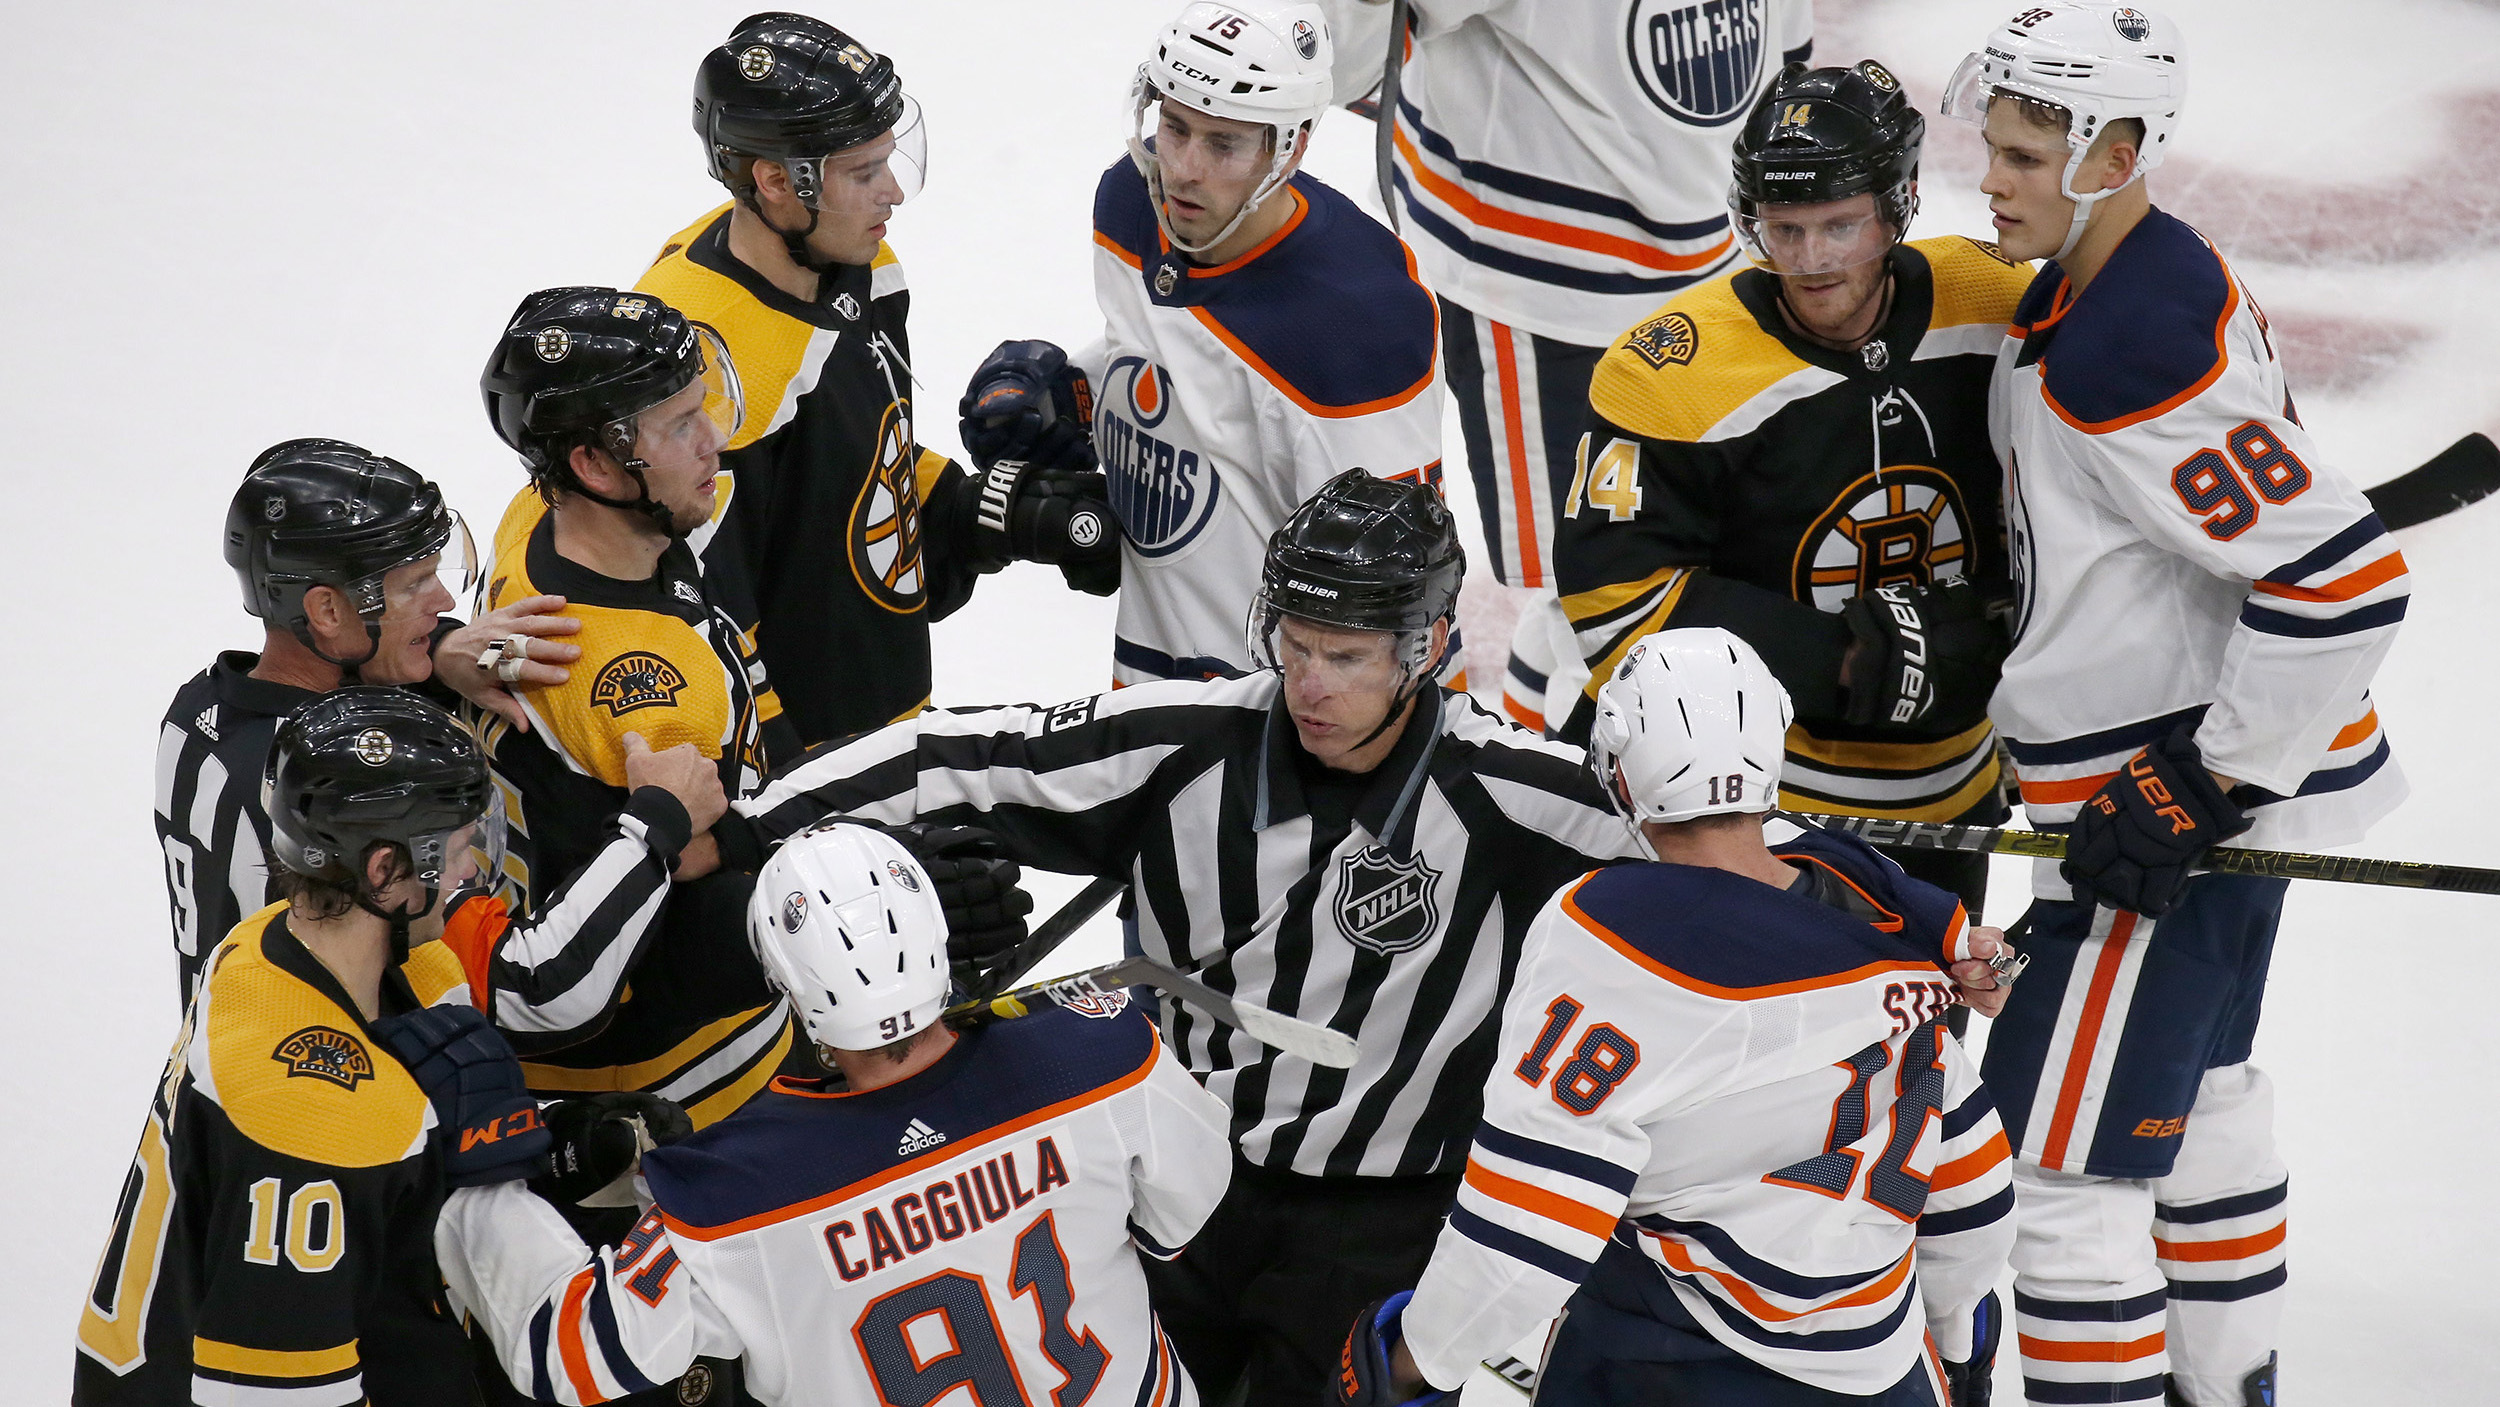 Marchand, Nordstrom lead Bruins past Oilers